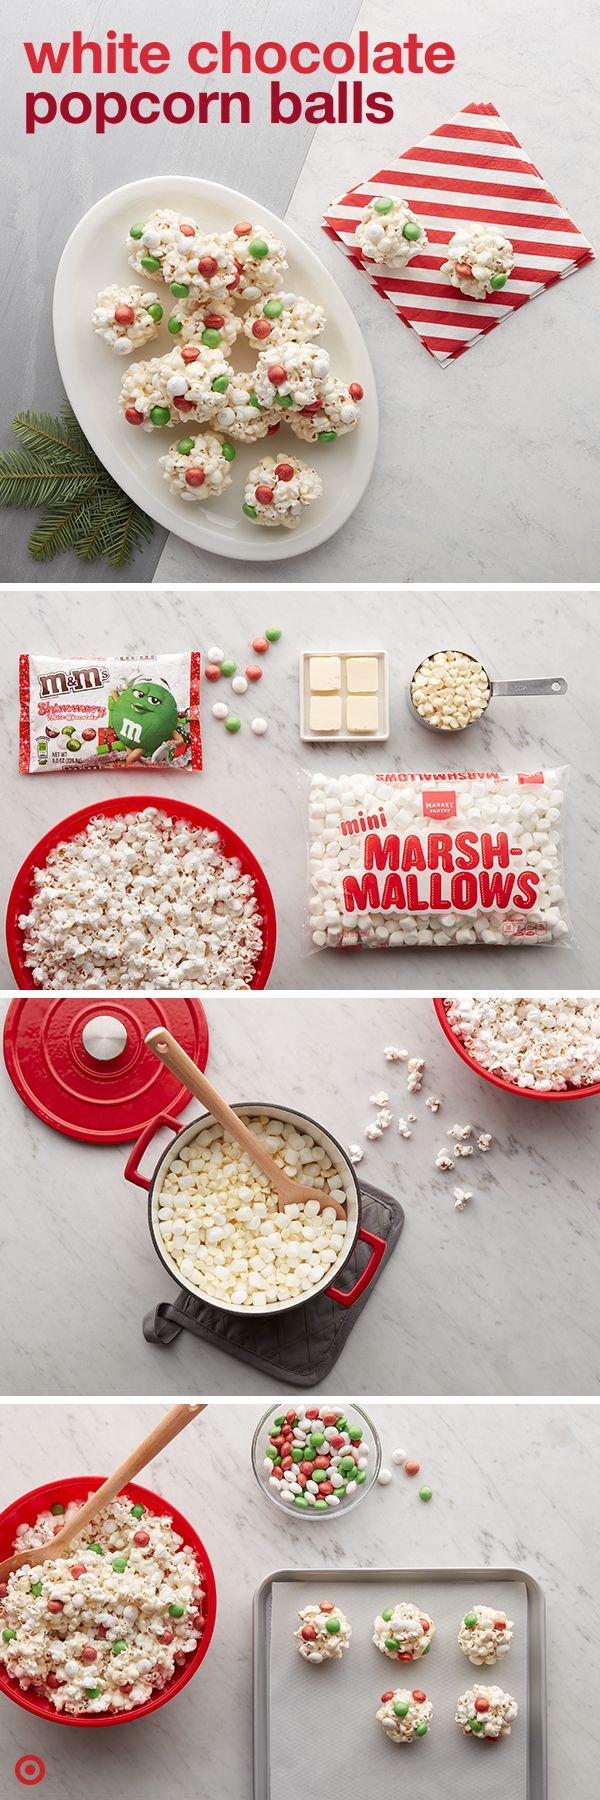 Get your holiday party poppin' with these simple, salty sweets. Melt butter, marshmallows and baking chips together until smooth. Pour over popcorn in a large (heatproof) bowl. Stir until it's coated, then add M&M'S candies. Form the mix into 2-inch balls and cool them on a pan until you're ready to party! These pop-ular M&M's Shimmery White Chocolate are available exclusively at Target.